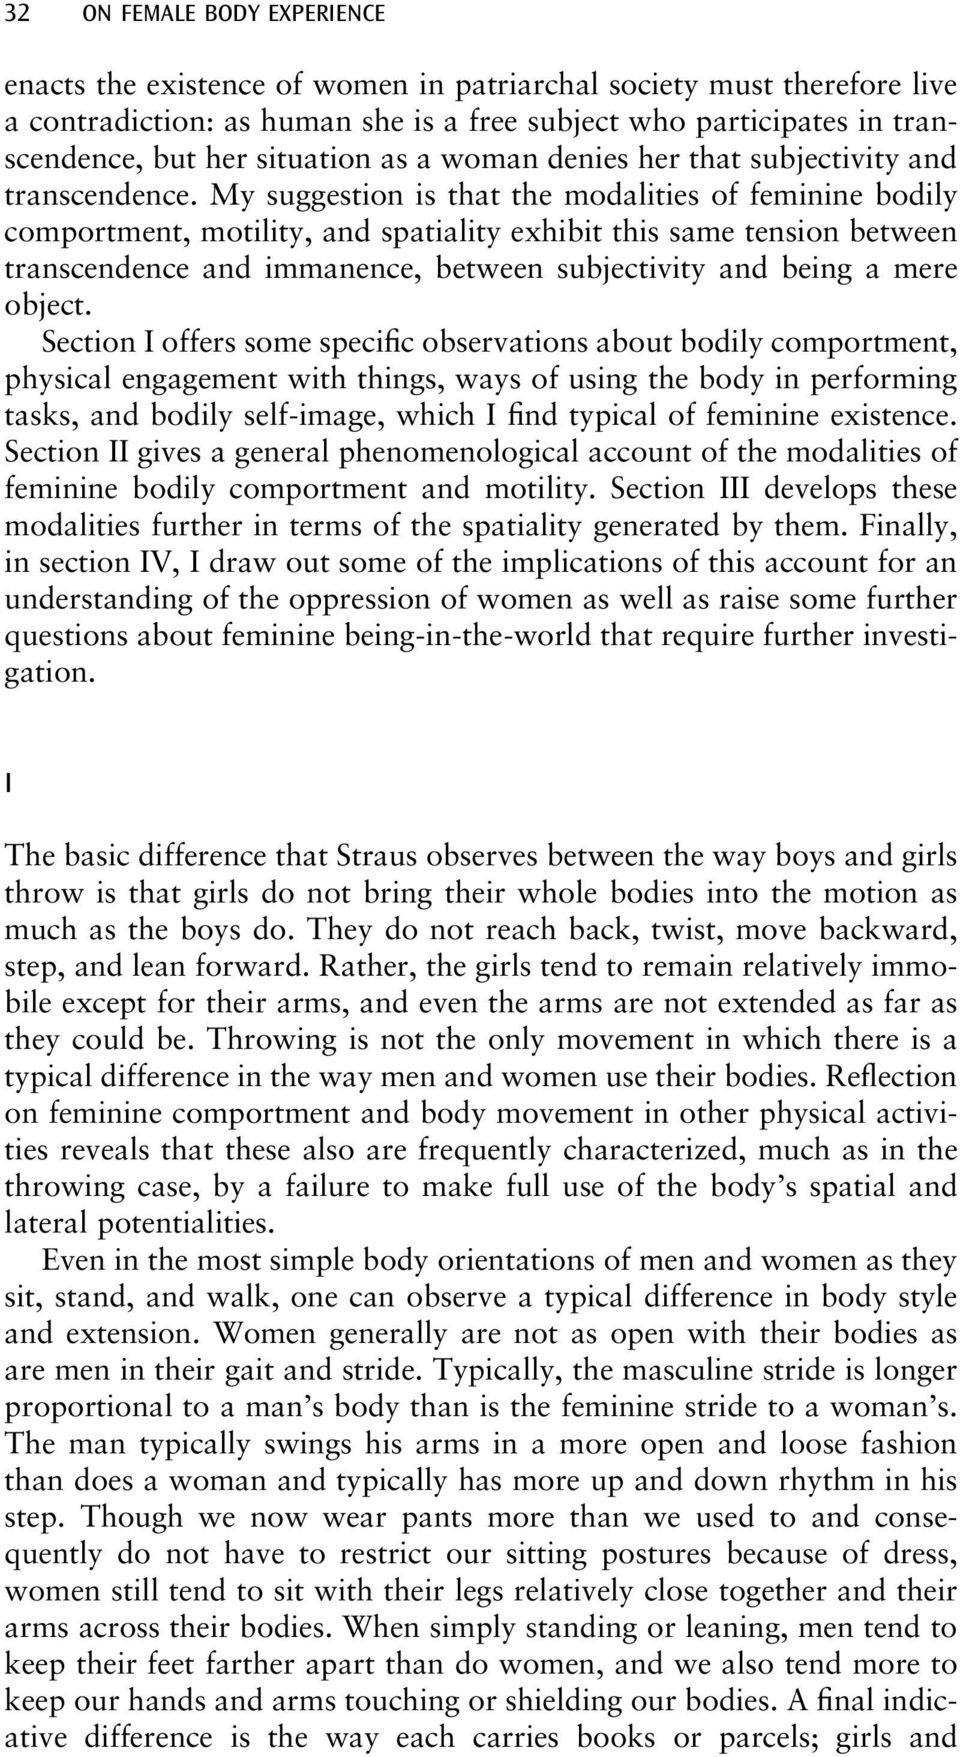 My suggestion is that the modalities of feminine bodily comportment, motility, and spatiality exhibit this same tension between transcendence and immanence, between subjectivity and being a mere